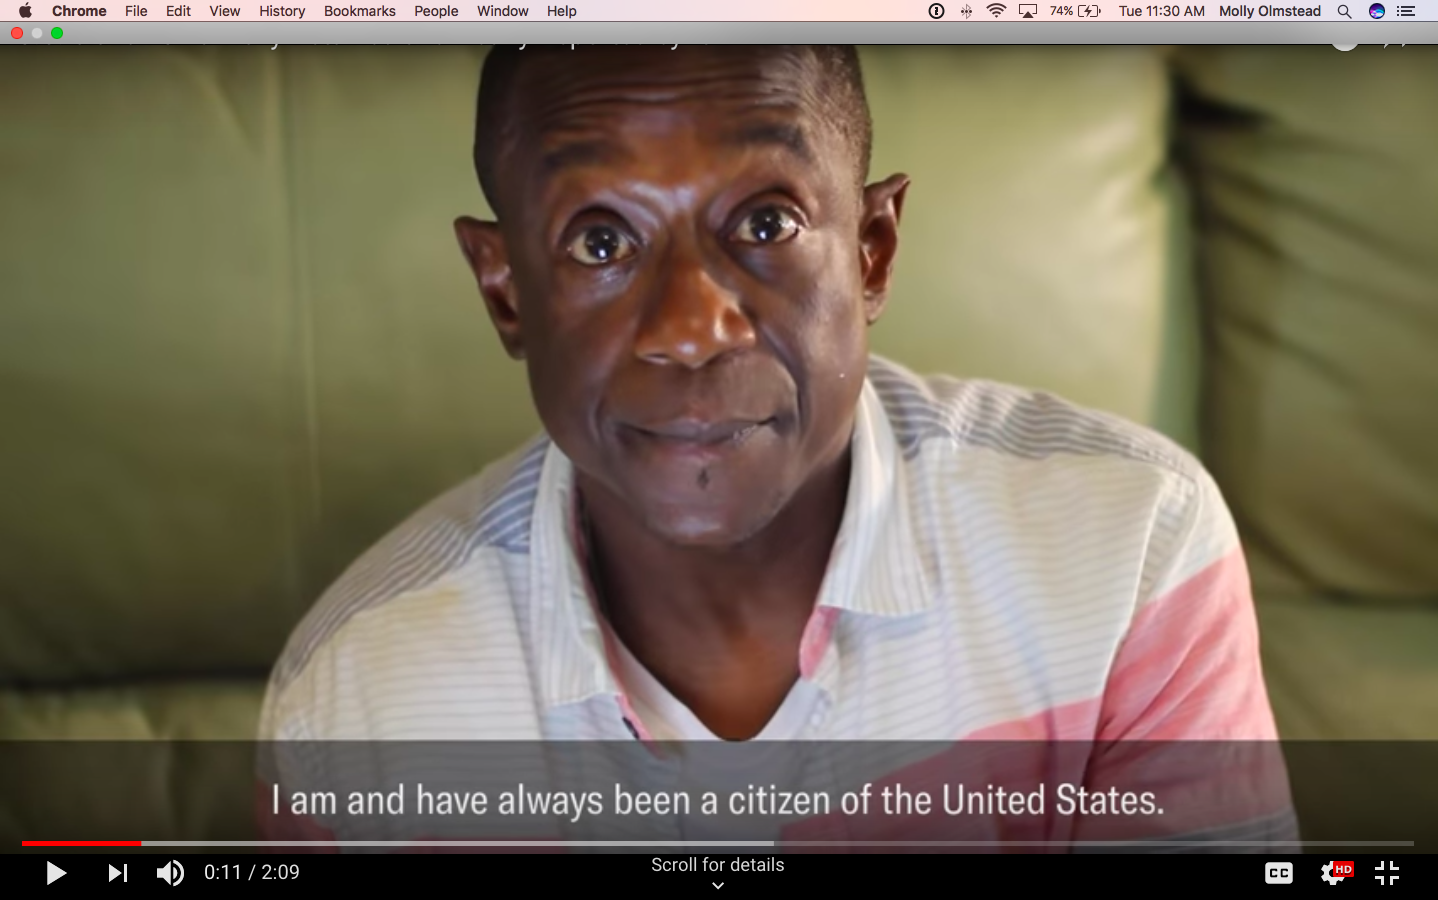 A screengrab from an ACLU video about the case. Brown looks into the camera earnestly.